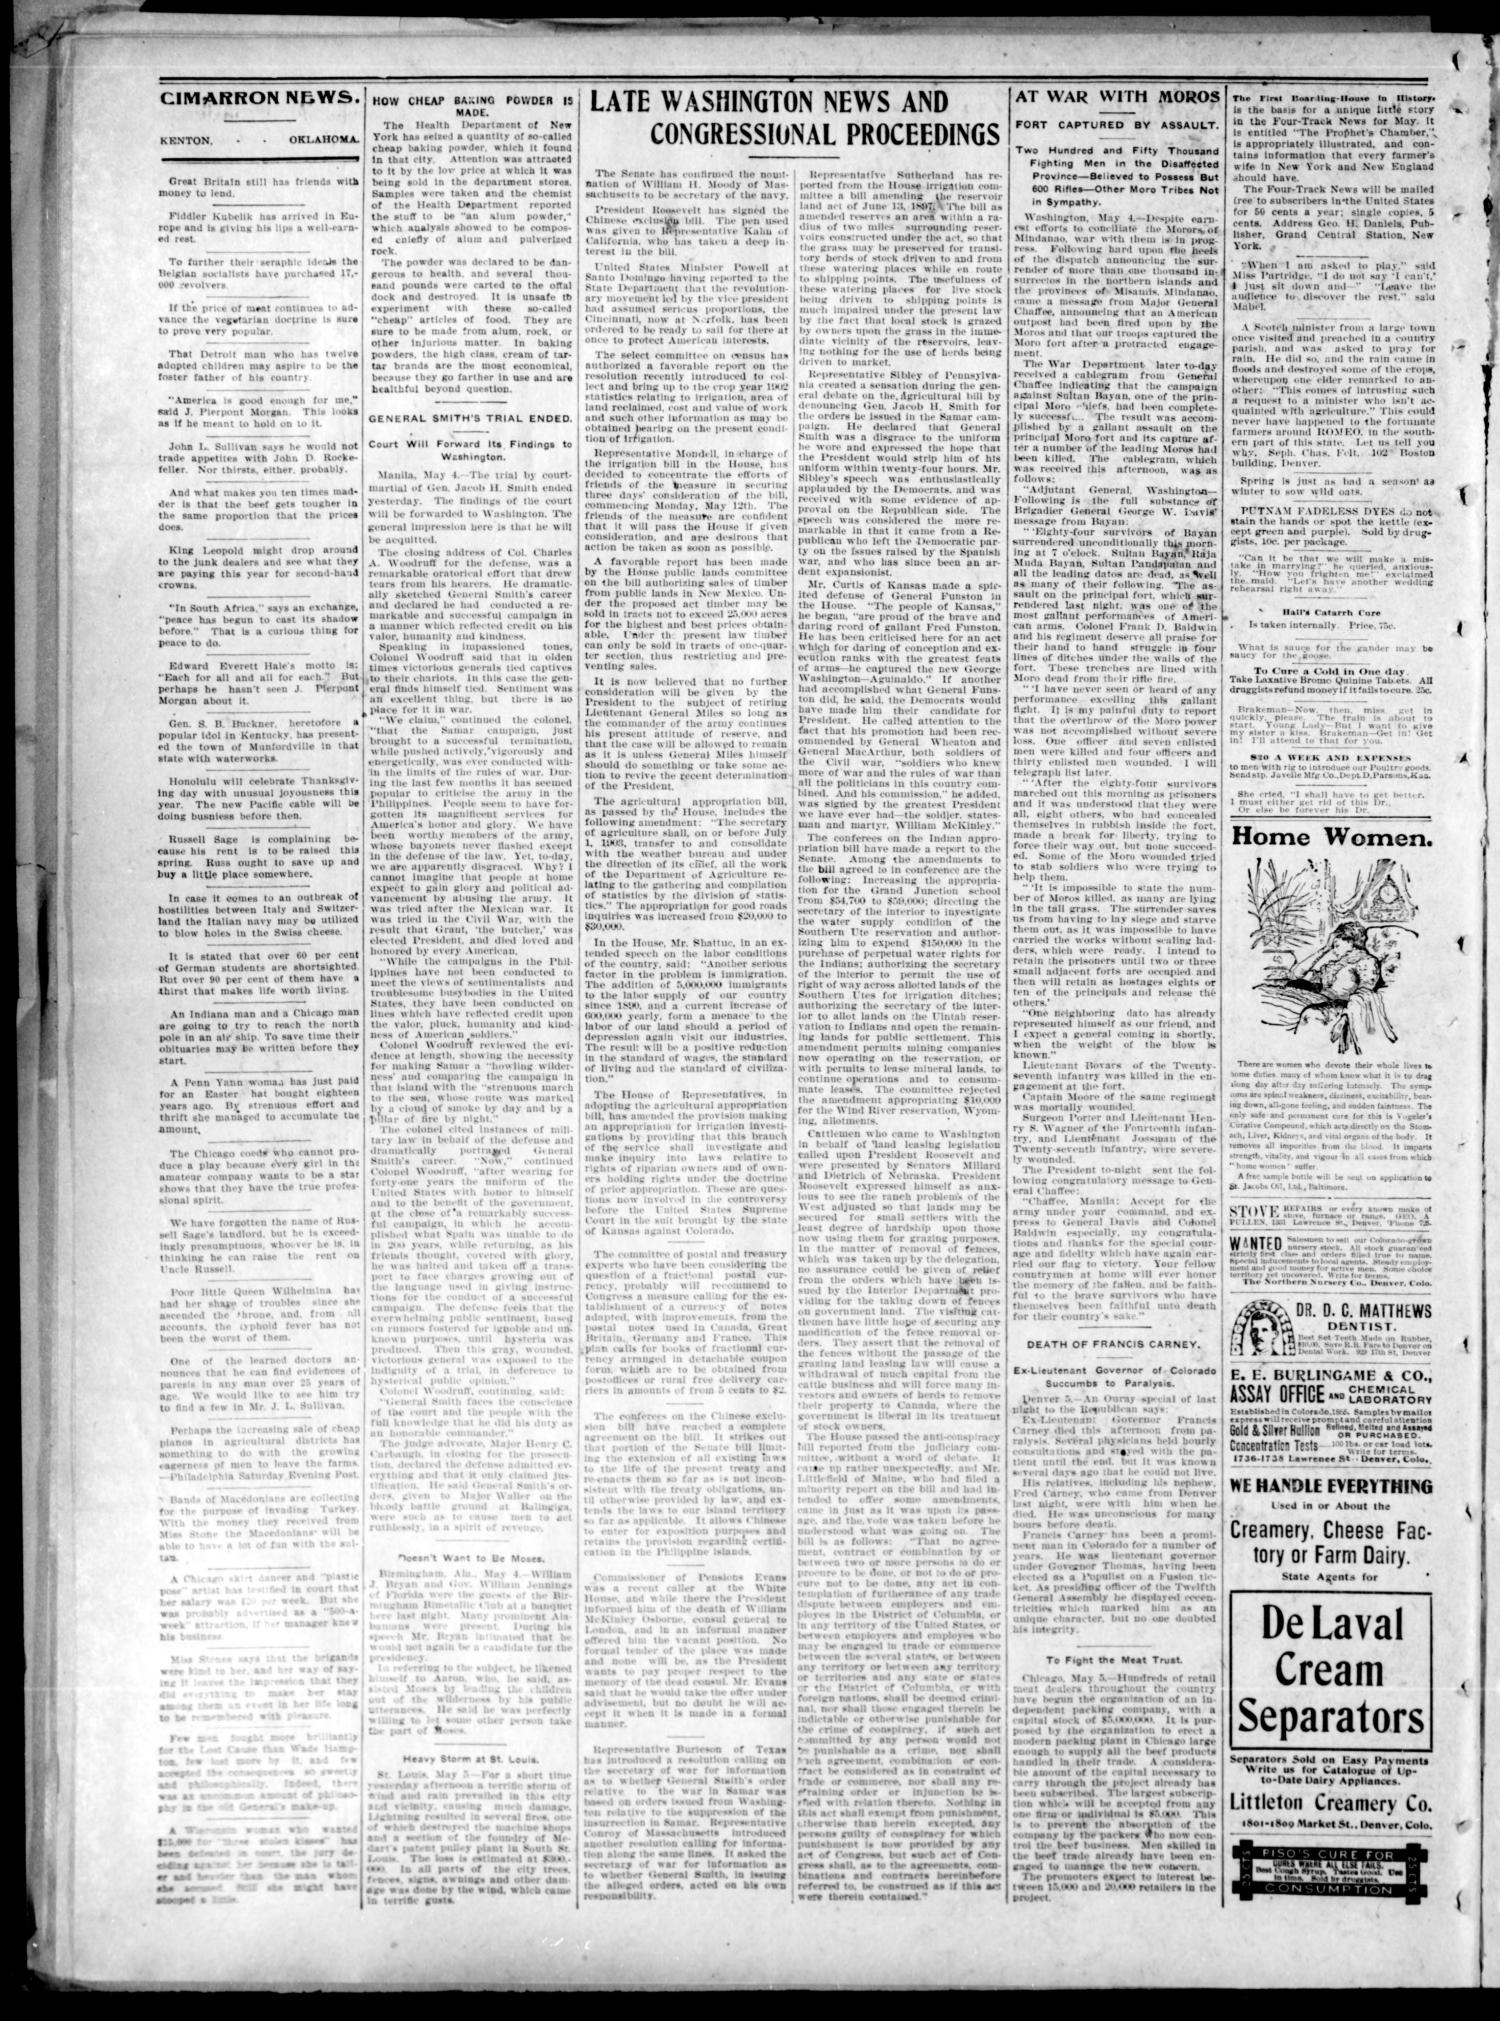 The Cimarron News. (Kenton, Okla.), Vol. 4, No. 40, Ed. 1 Friday, May 9, 1902                                                                                                      [Sequence #]: 2 of 4